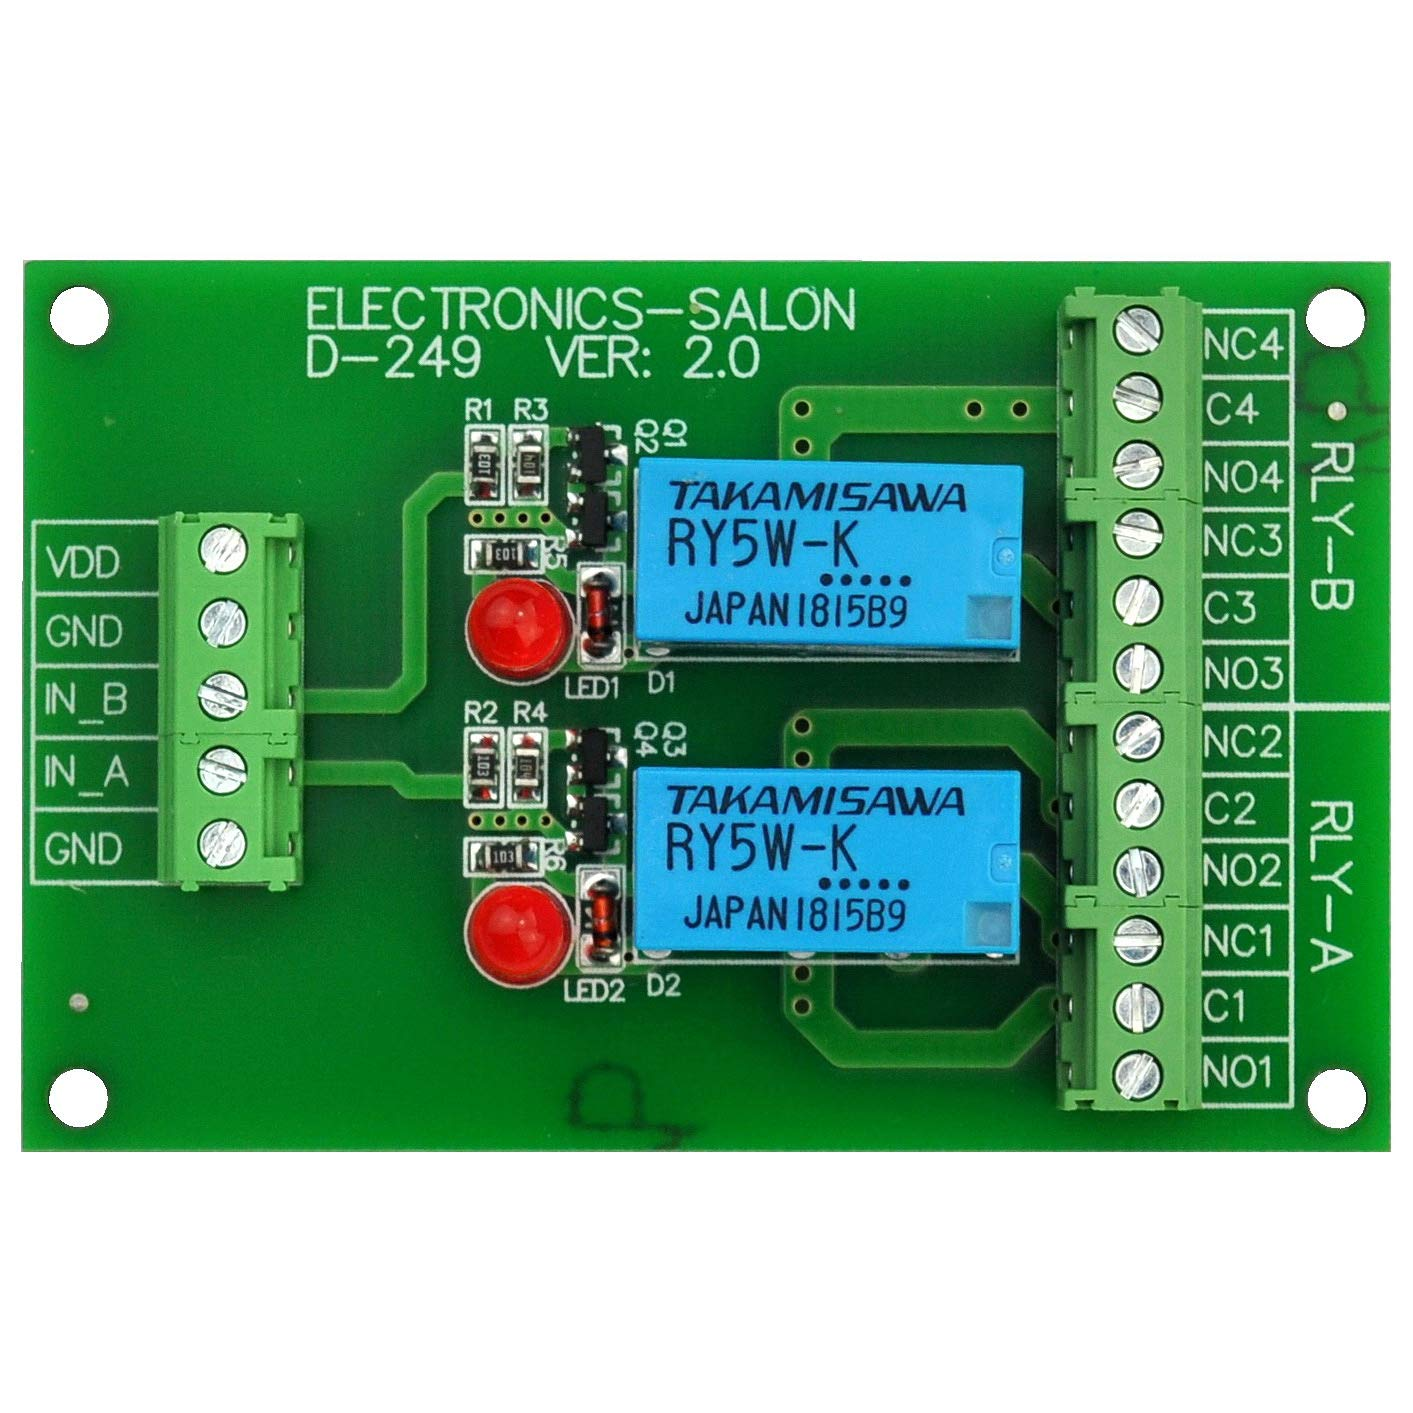 Electronics Salon 2 Dpdt Signal Relay Module Board Dc 5v Version With Arduino Circuit On To Ac Schematic For Raspberry Pi 8051 Pic Industrial Scientific